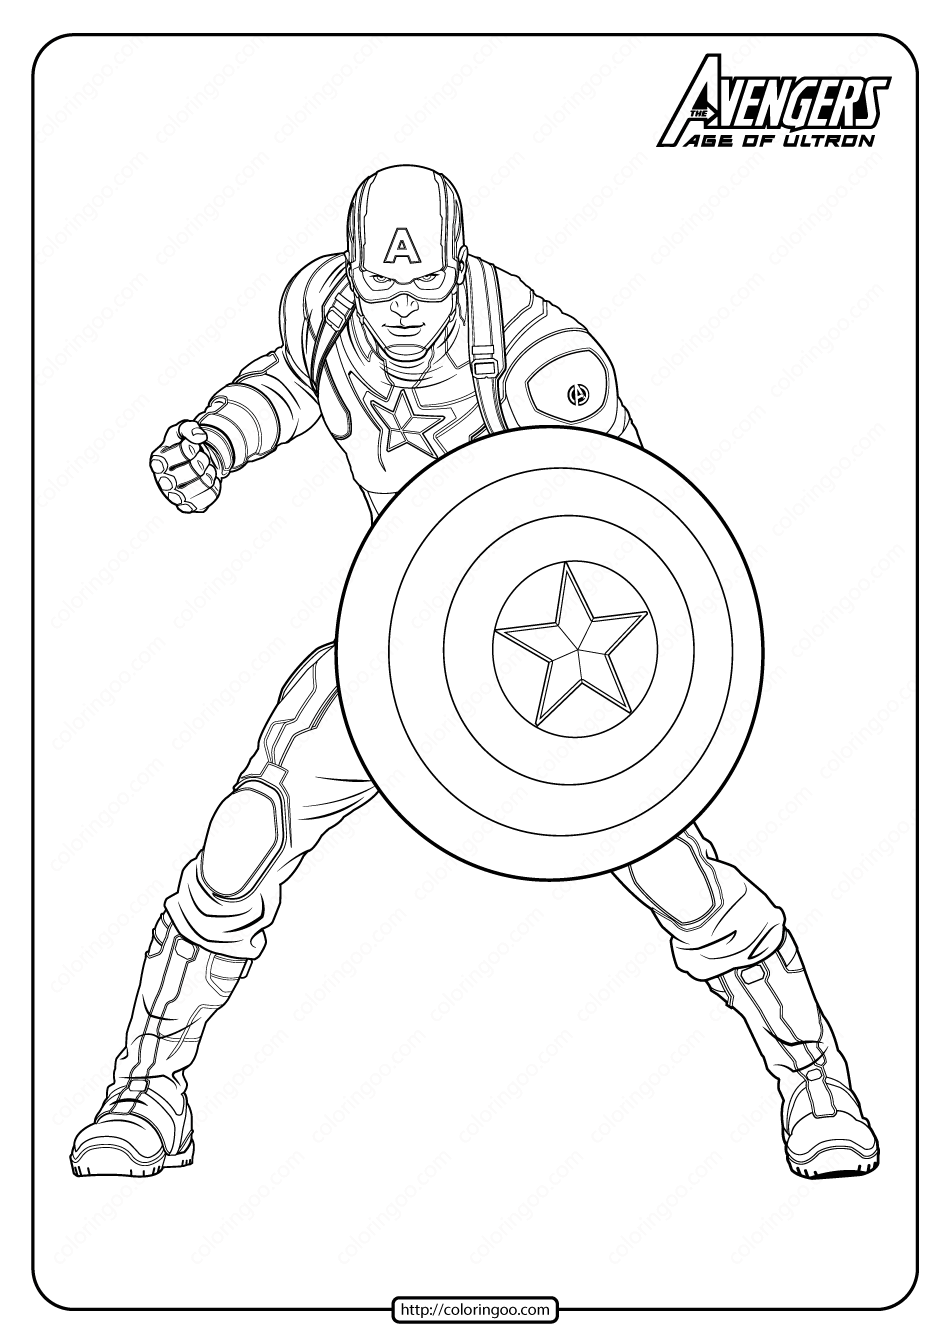 Marvel Avengers Captan America Pdf Coloring Pages Avengers Coloring Pages Superhero Coloring Pages Captain America Coloring Pages